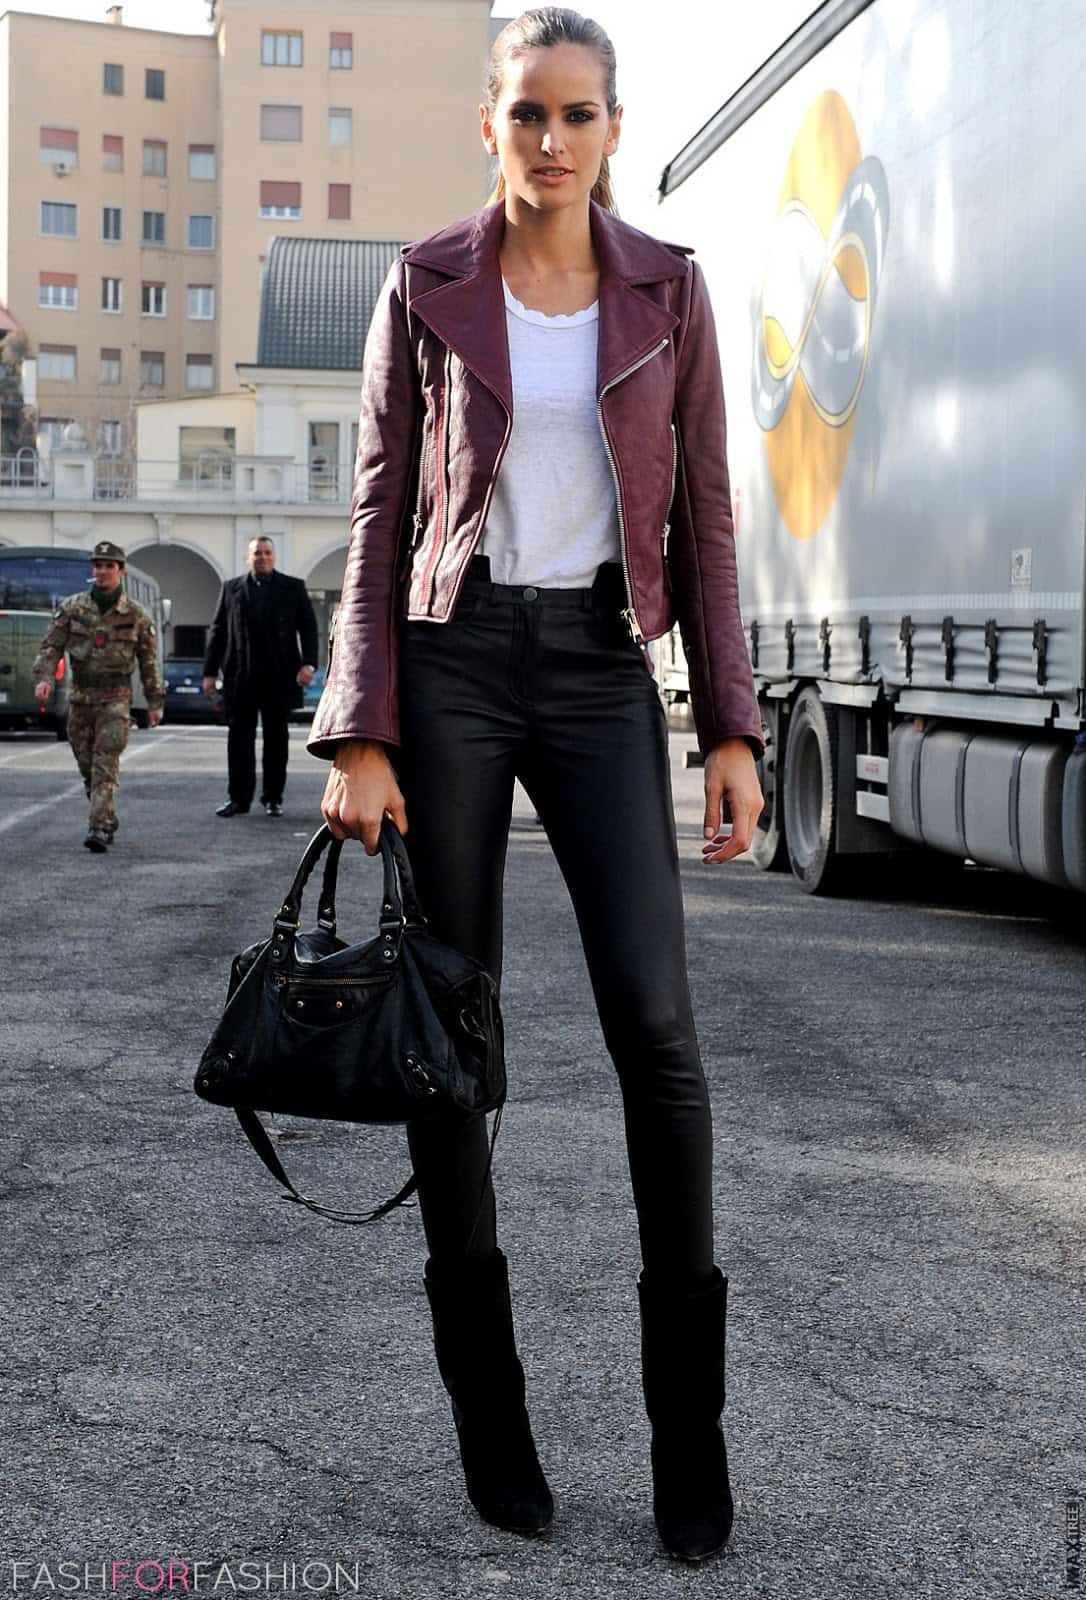 Leather Pants Street Style 6 The Fashion Tag Blog